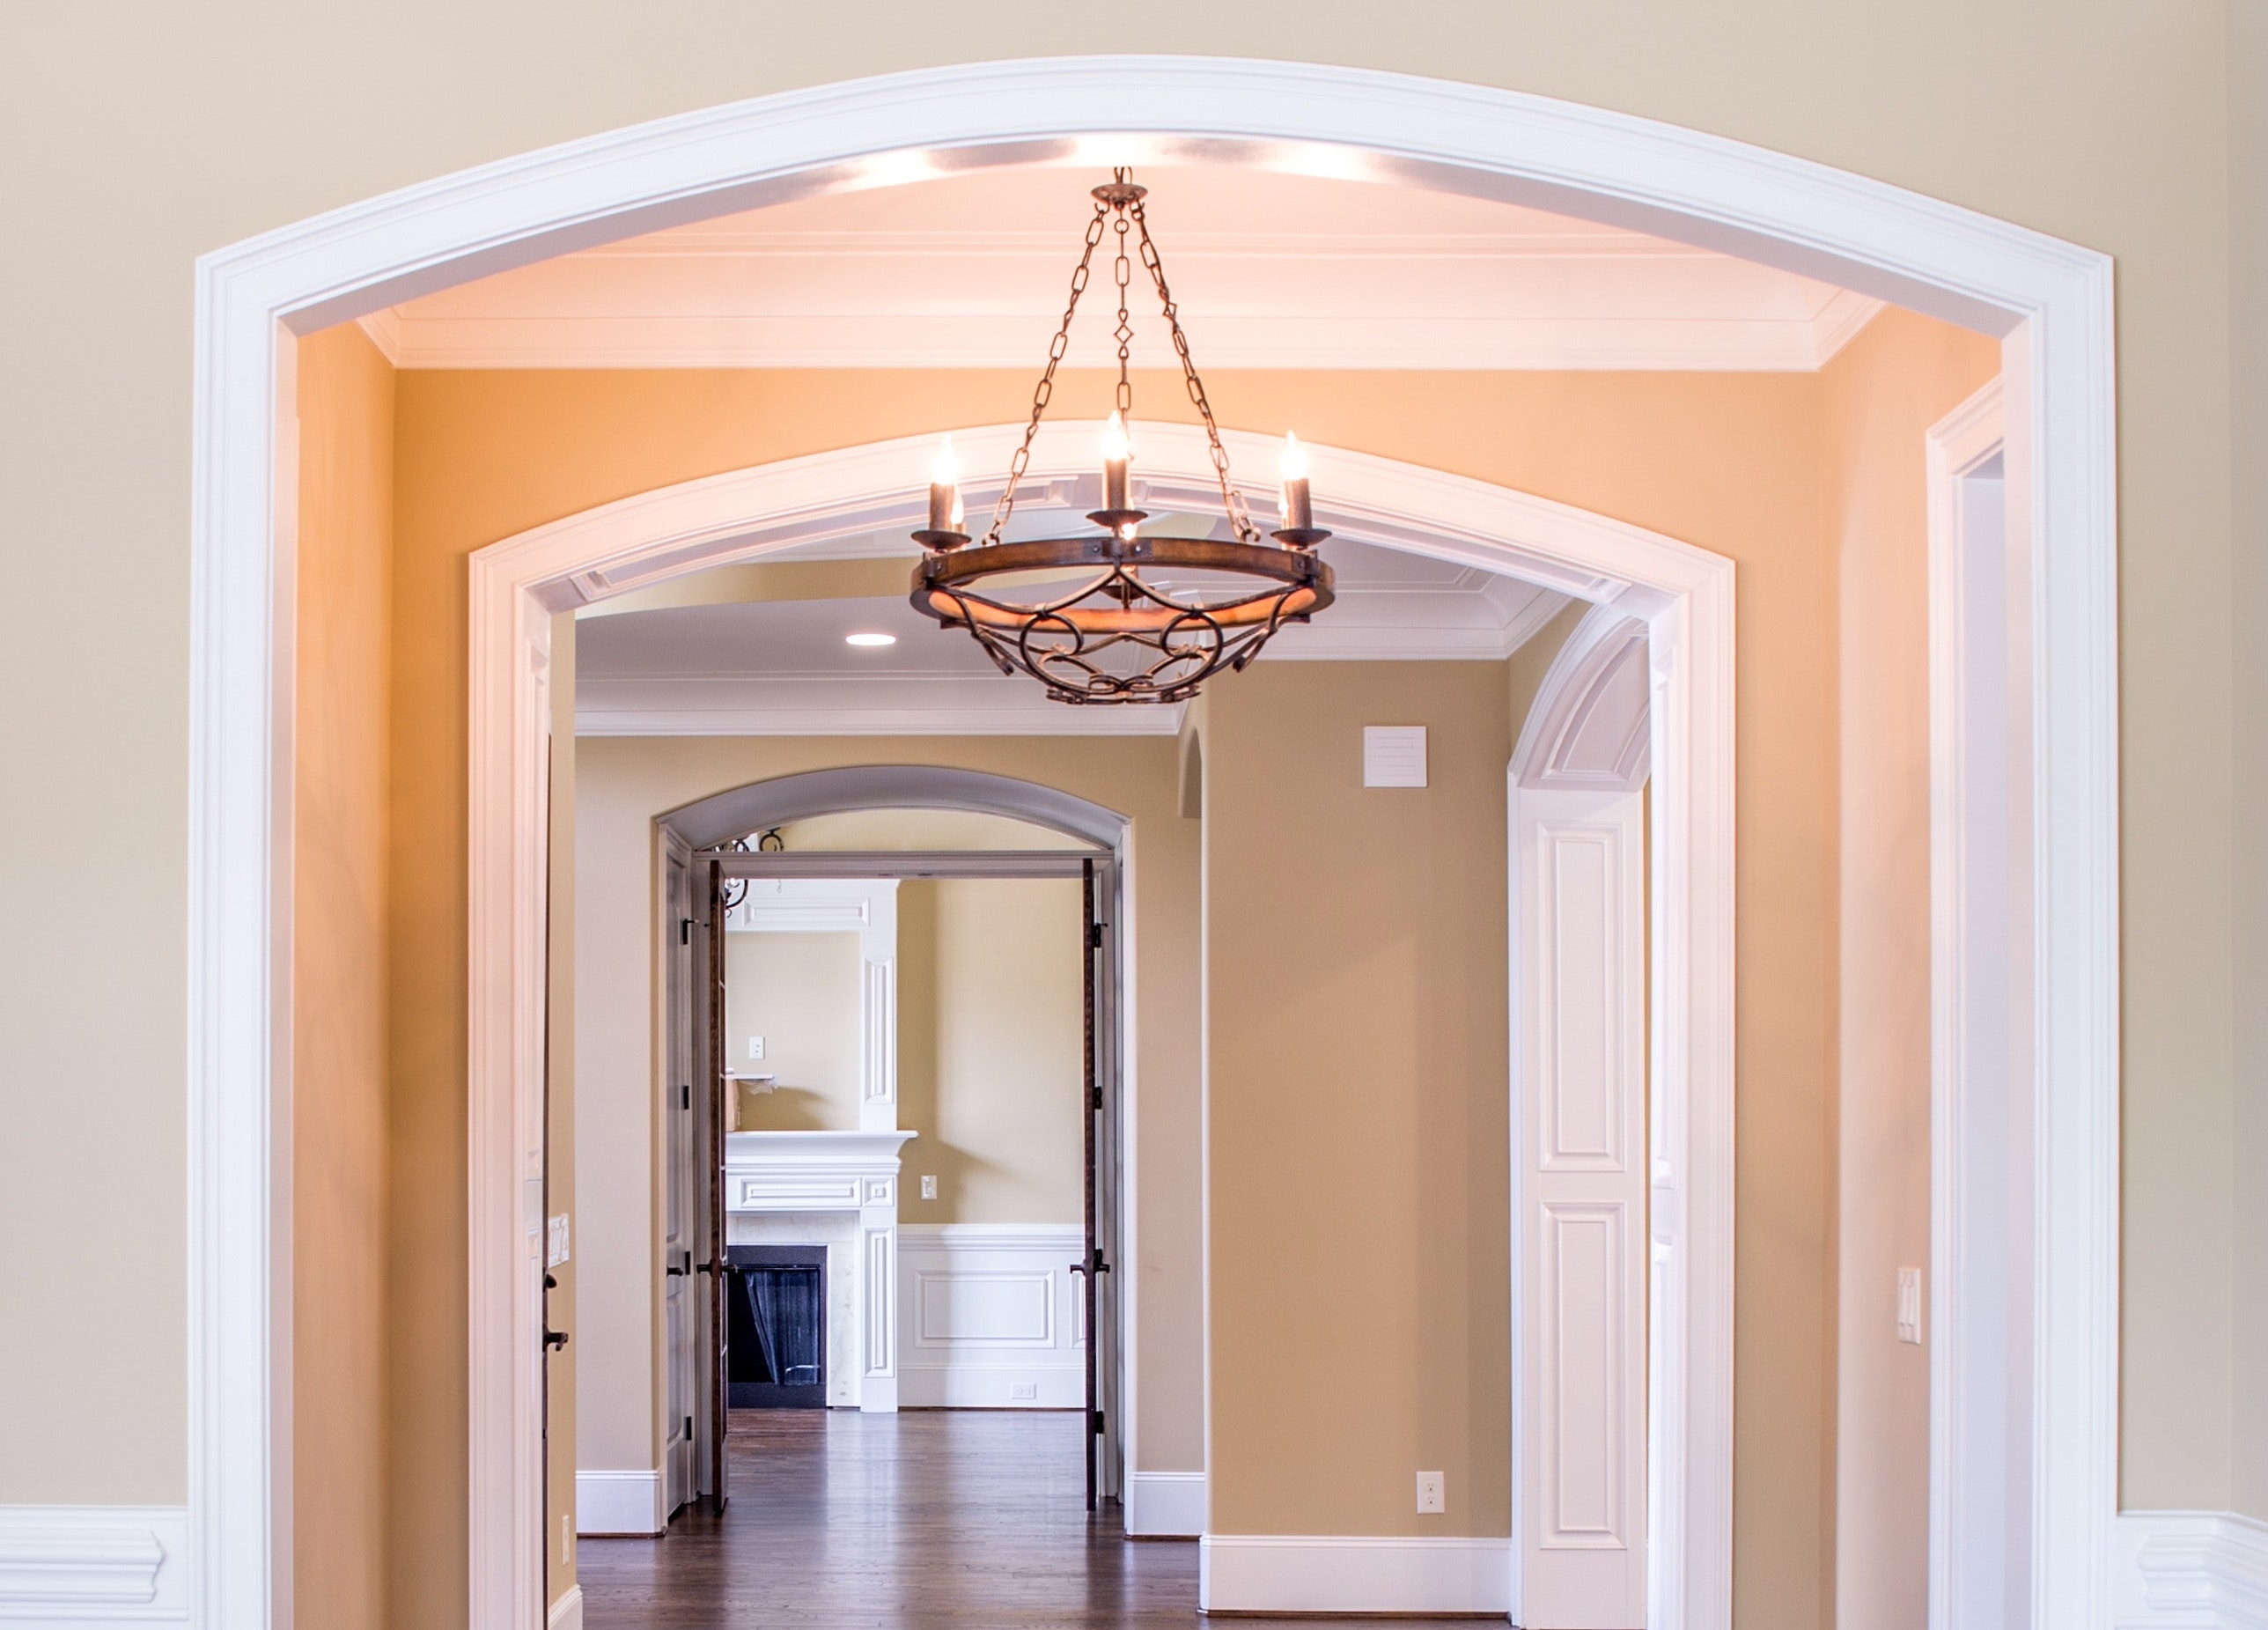 How to install a chandelier in a high ceiling